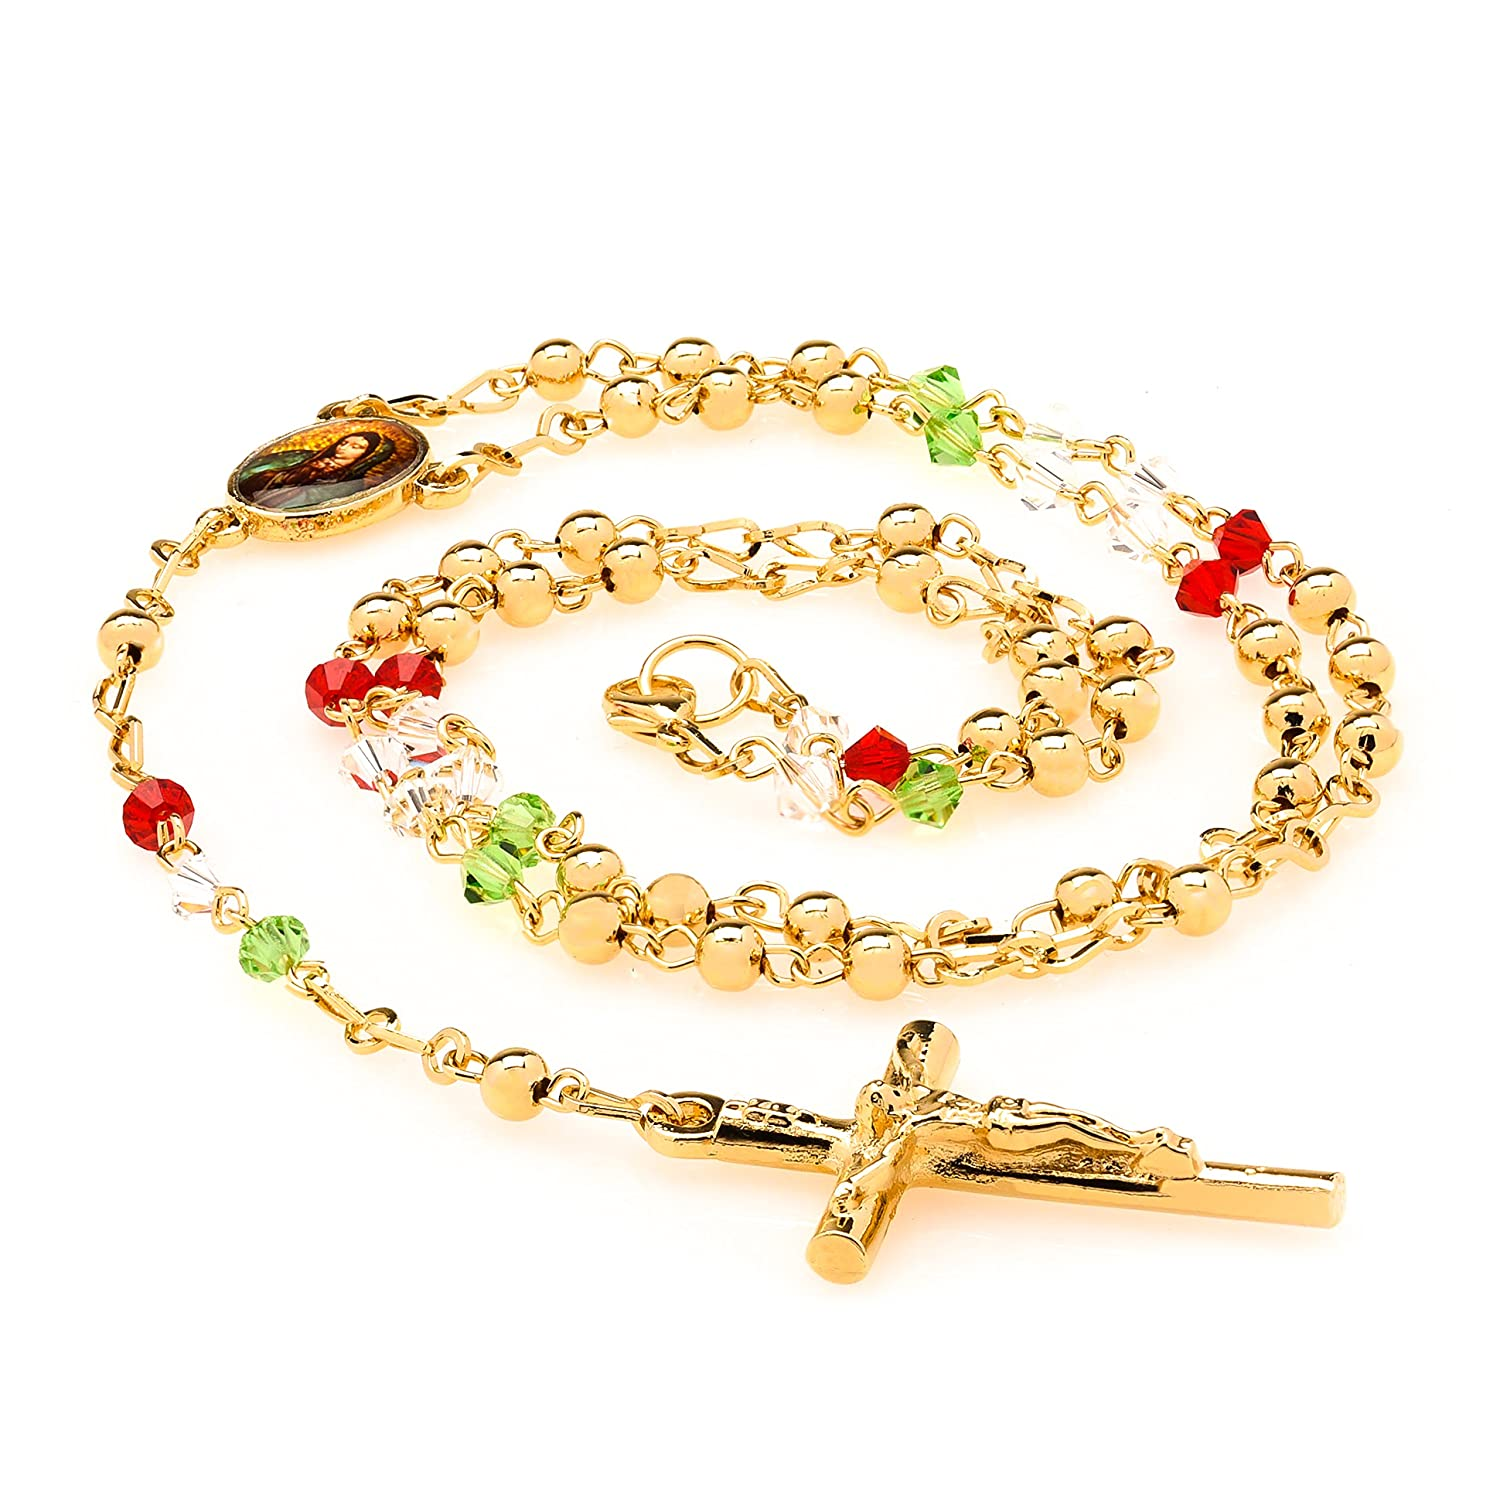 Bracelet Man Woman Red Medal Of Jesucrito Silver New Amulet Luck Charm By Scientific Process Jewelry & Watches Bracelets